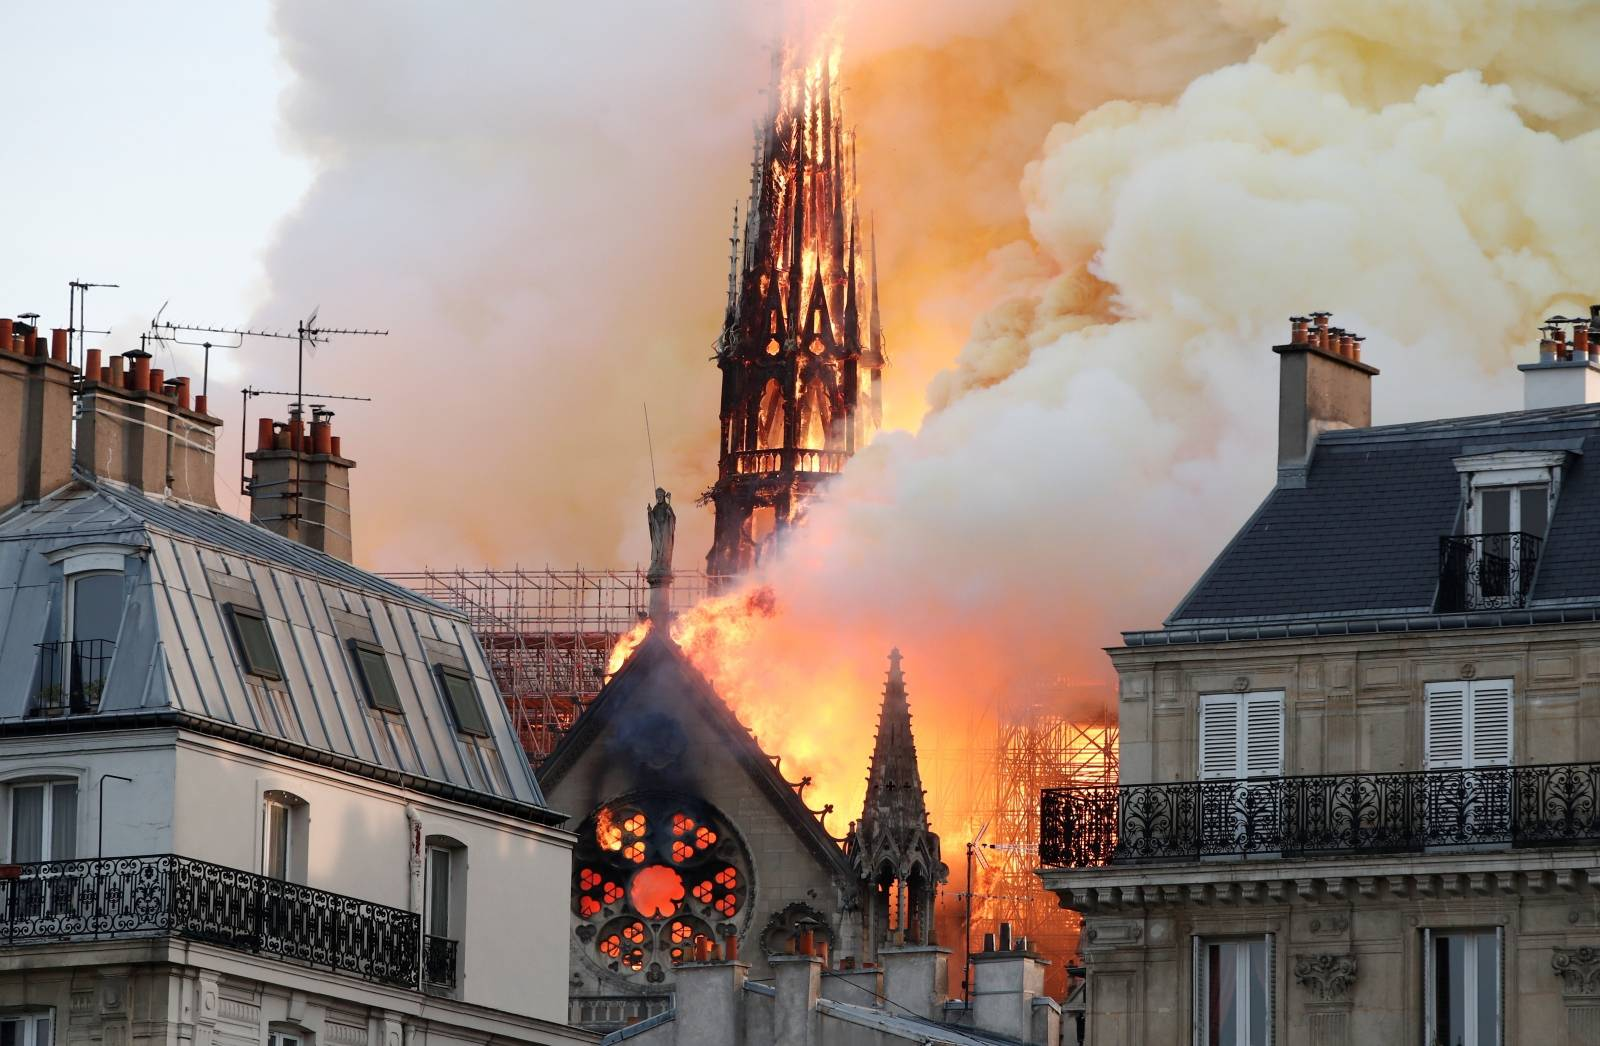 Fire at Notre Dame Cathedral in Paris